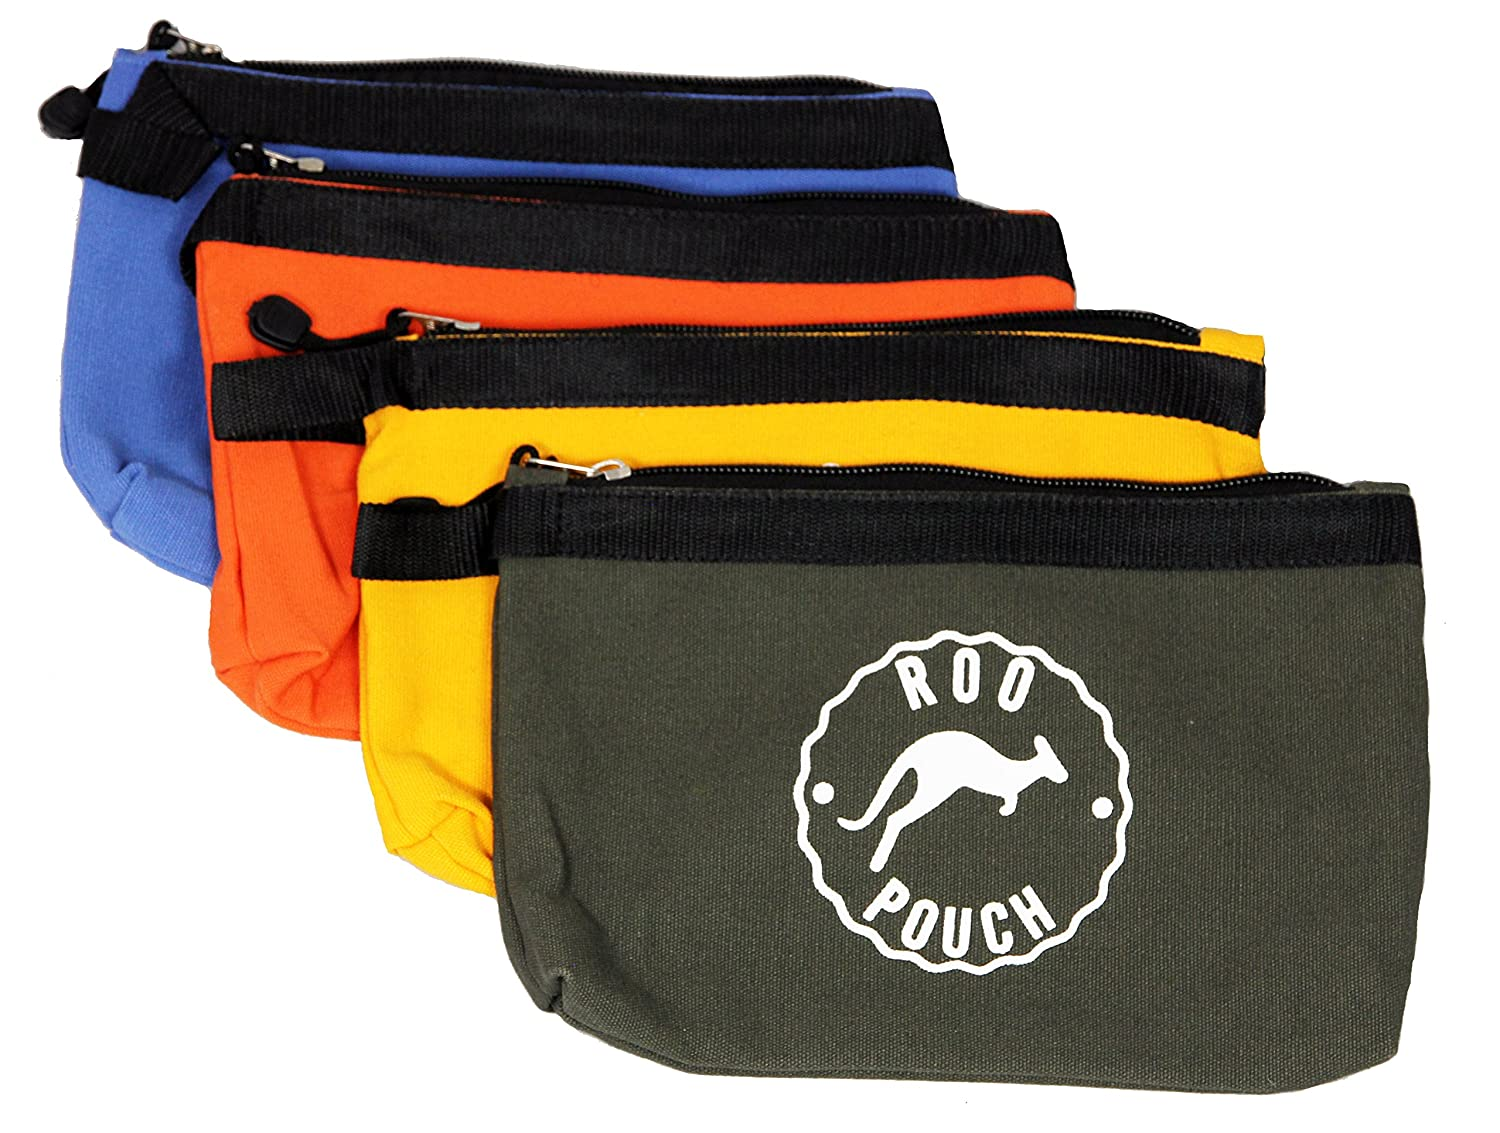 Roo Pouch Tool Bag Includes 4 Heavy Duty Canvas Zipper Tool Bags Great for Organizing Small Tools